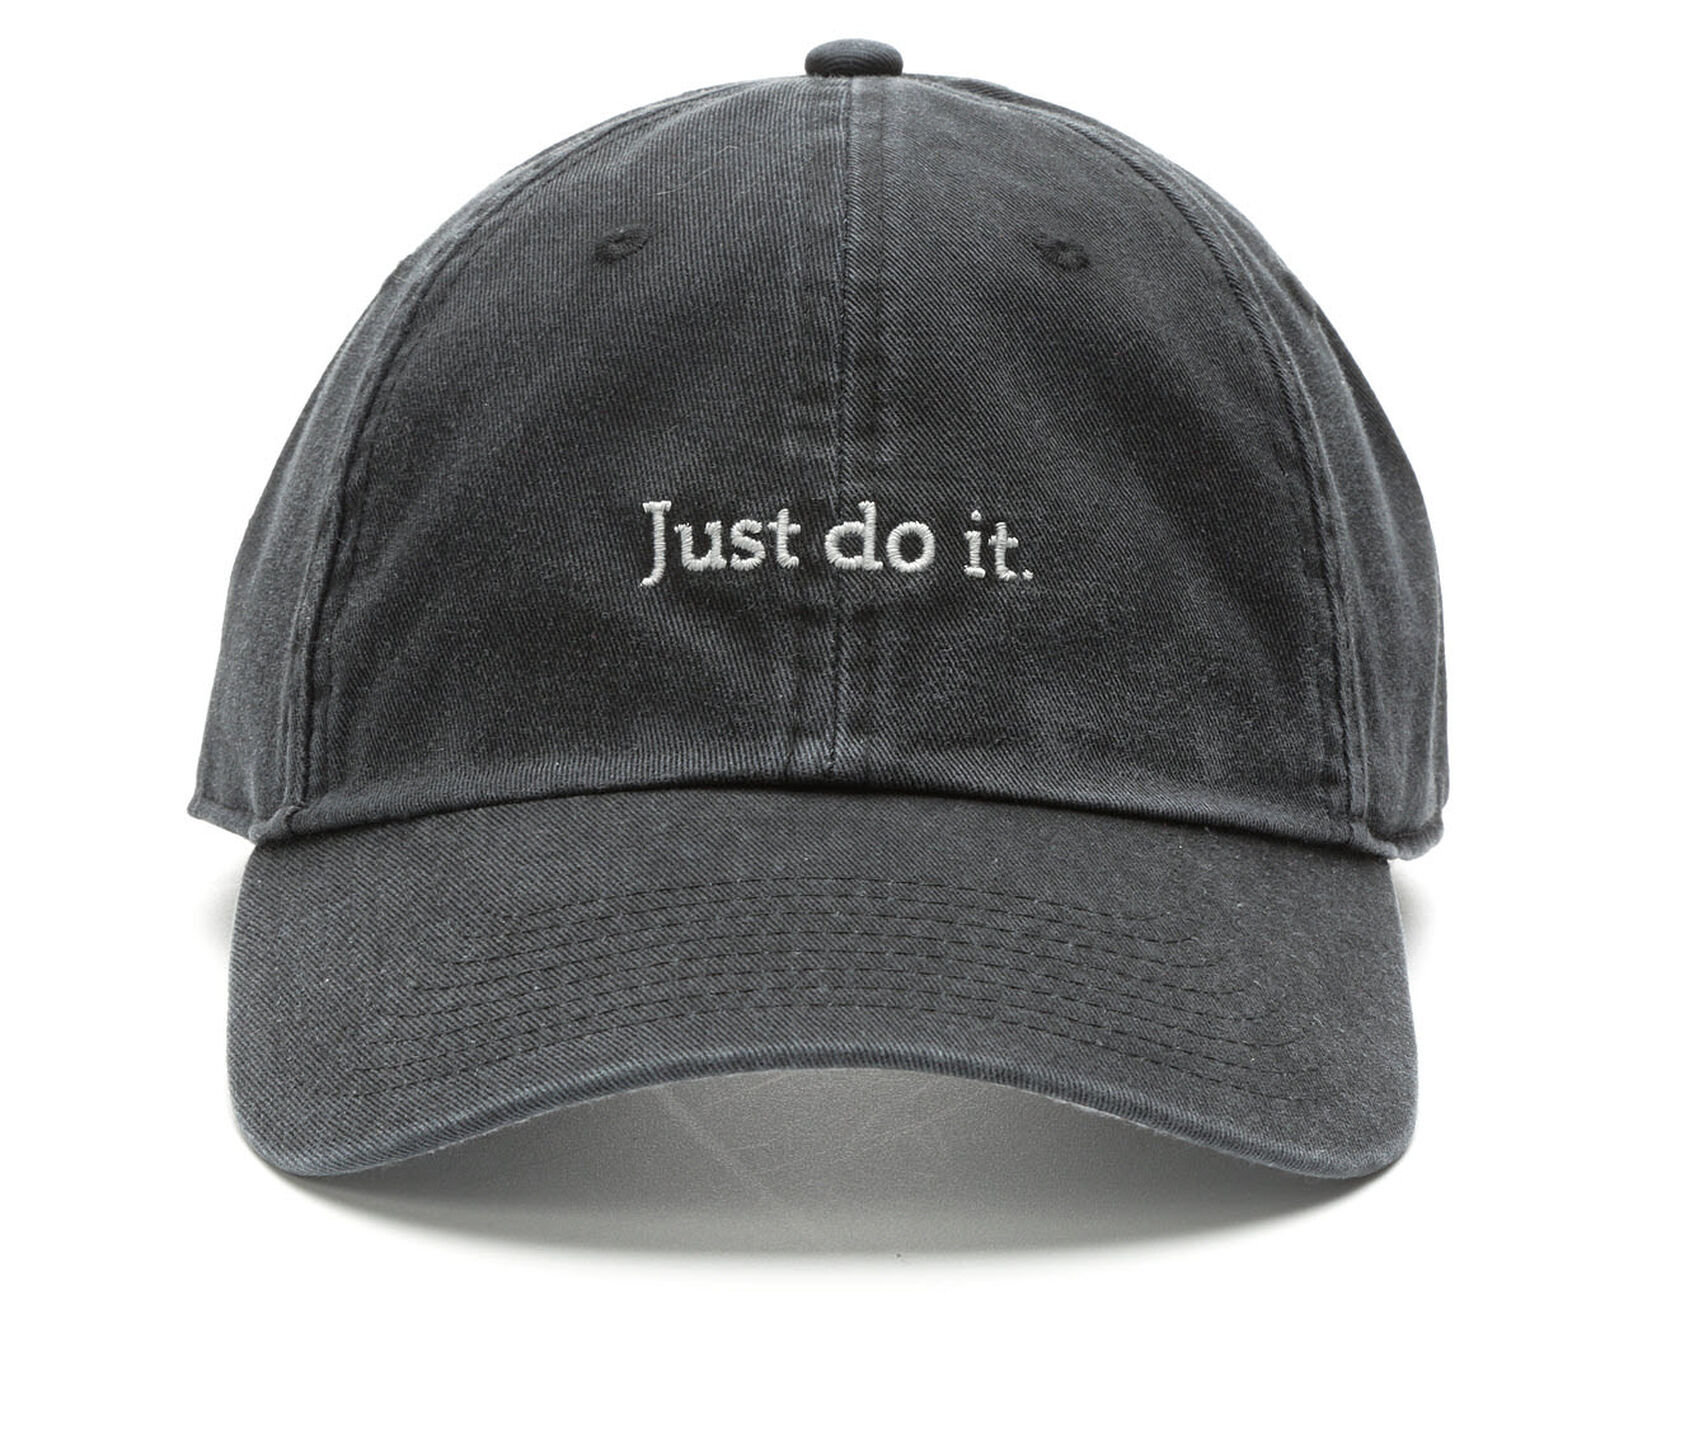 a89442760fc Nike NSW Just Do It Baseball Cap. Previous